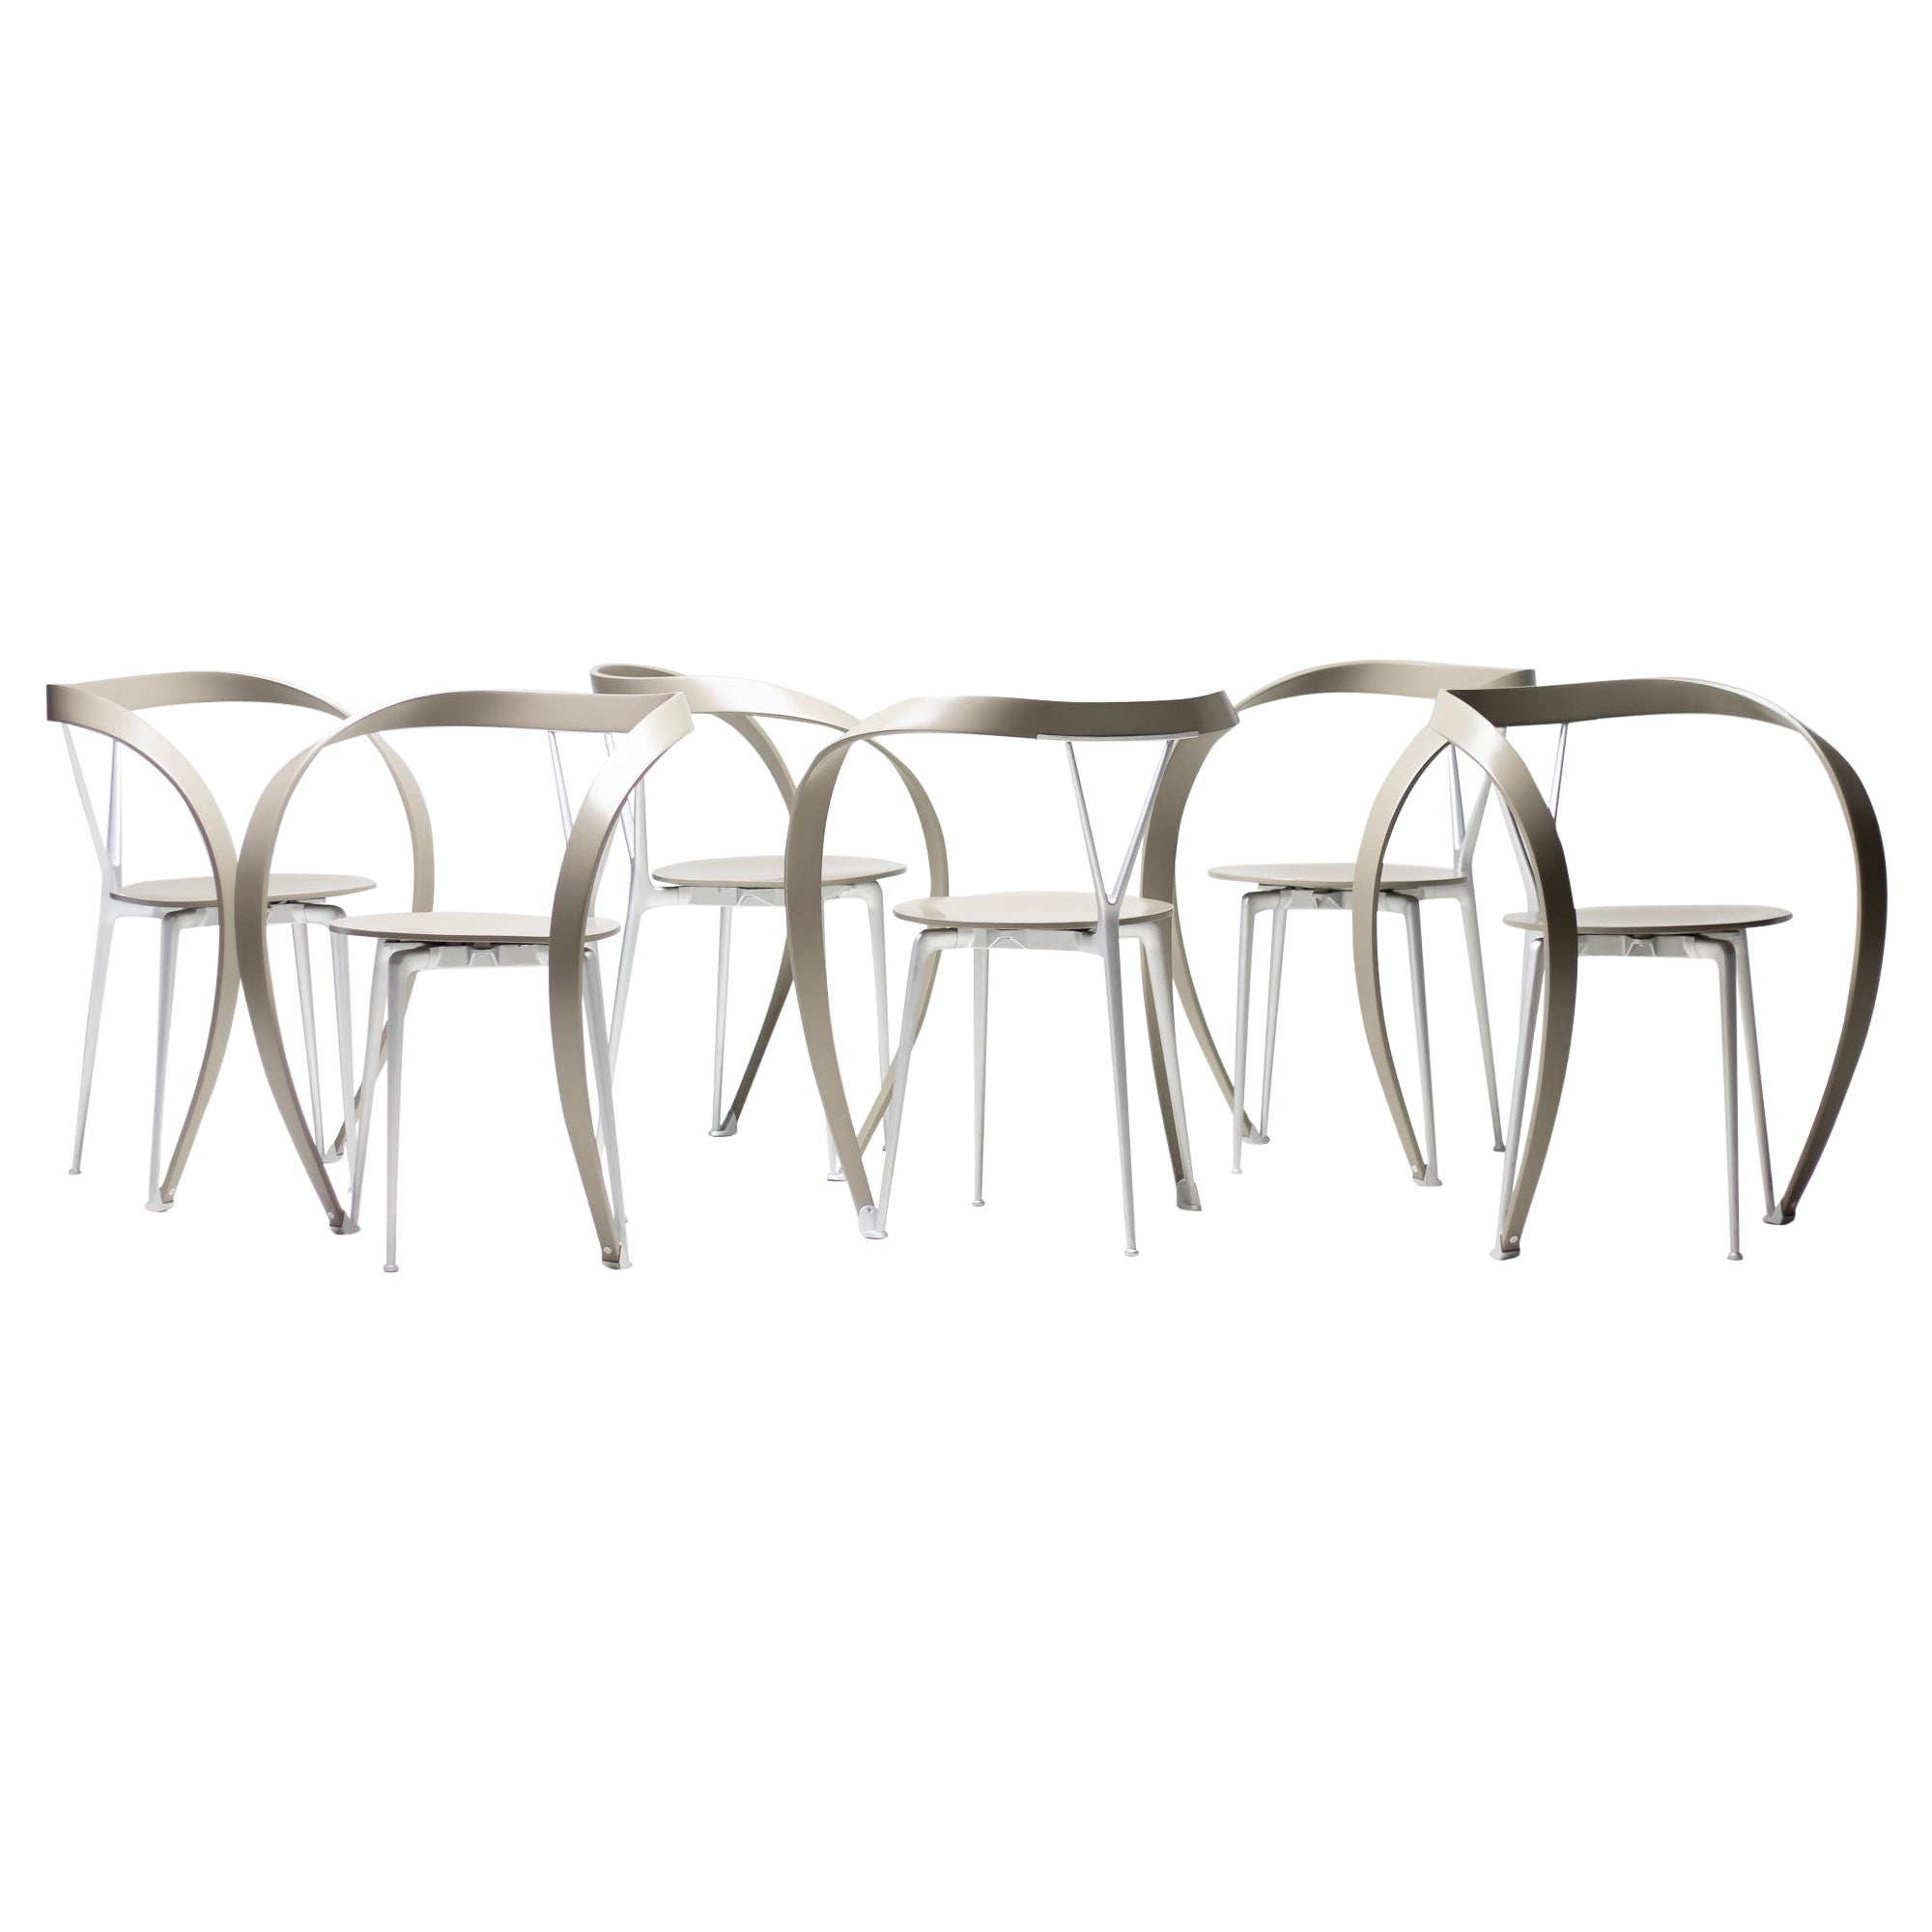 Set of Six Revers Chairs by Andrea Branzi for Cassina